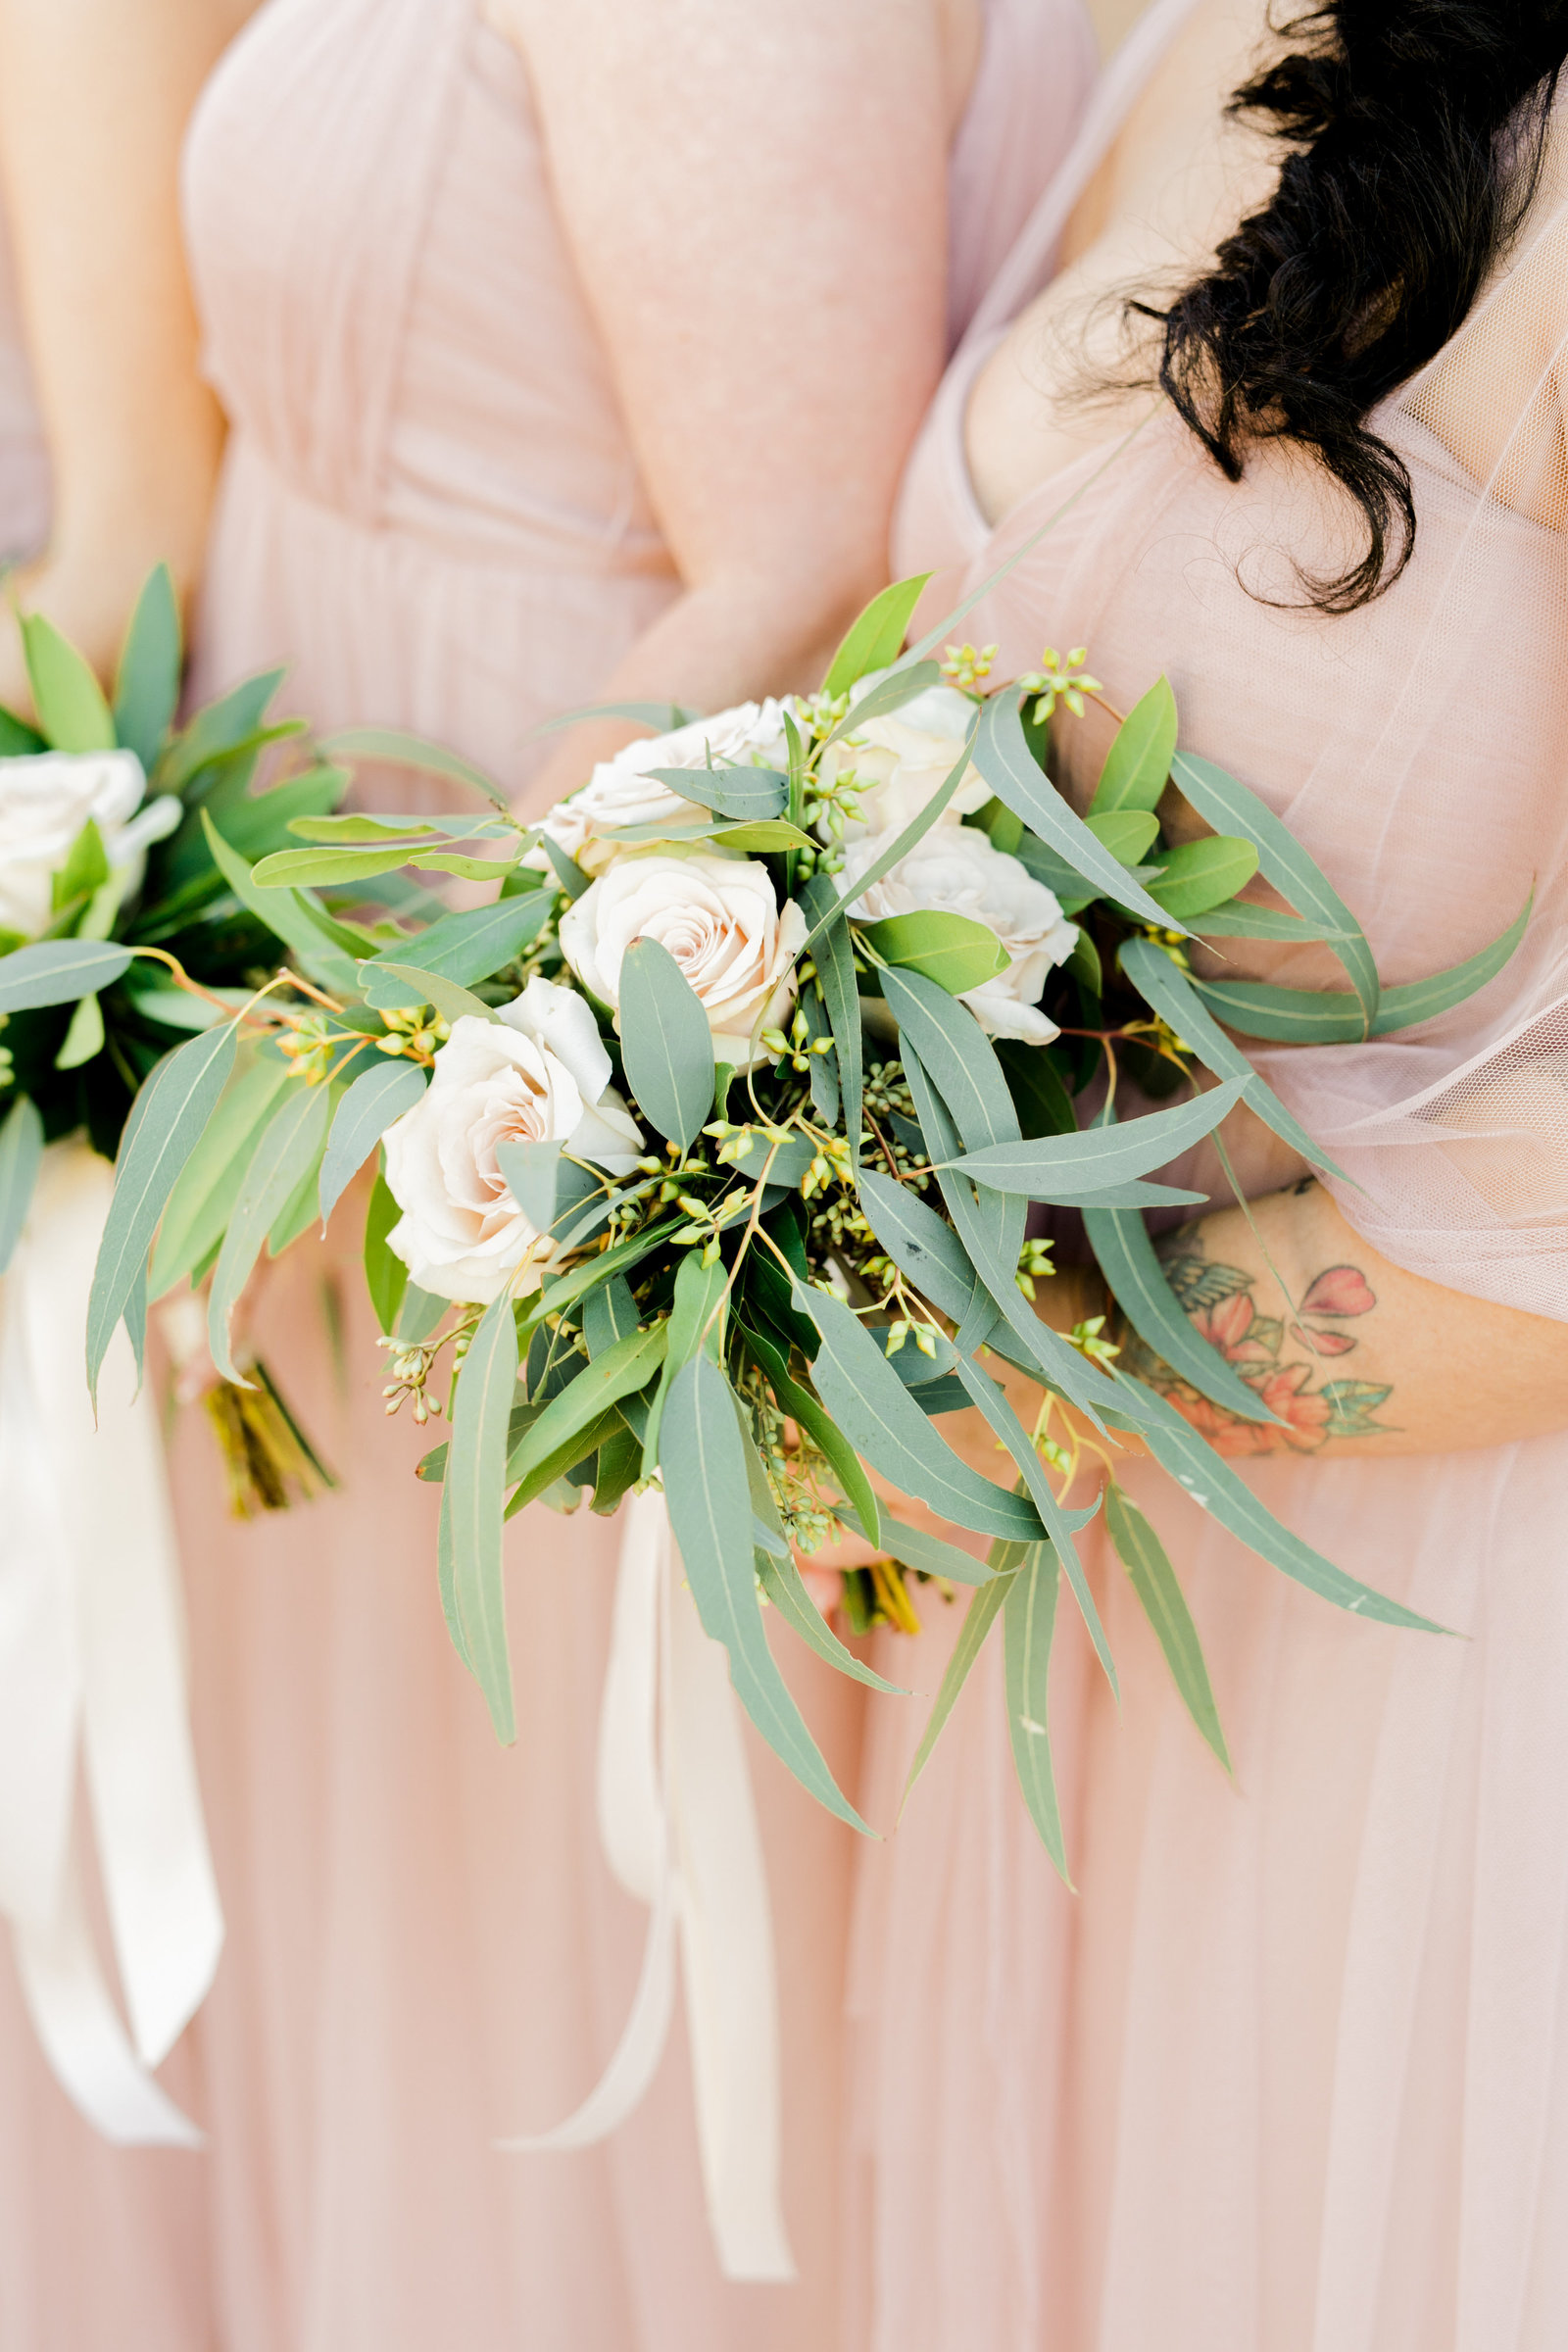 Your-Event-Florist-Arizona-Wedding-Flowers80